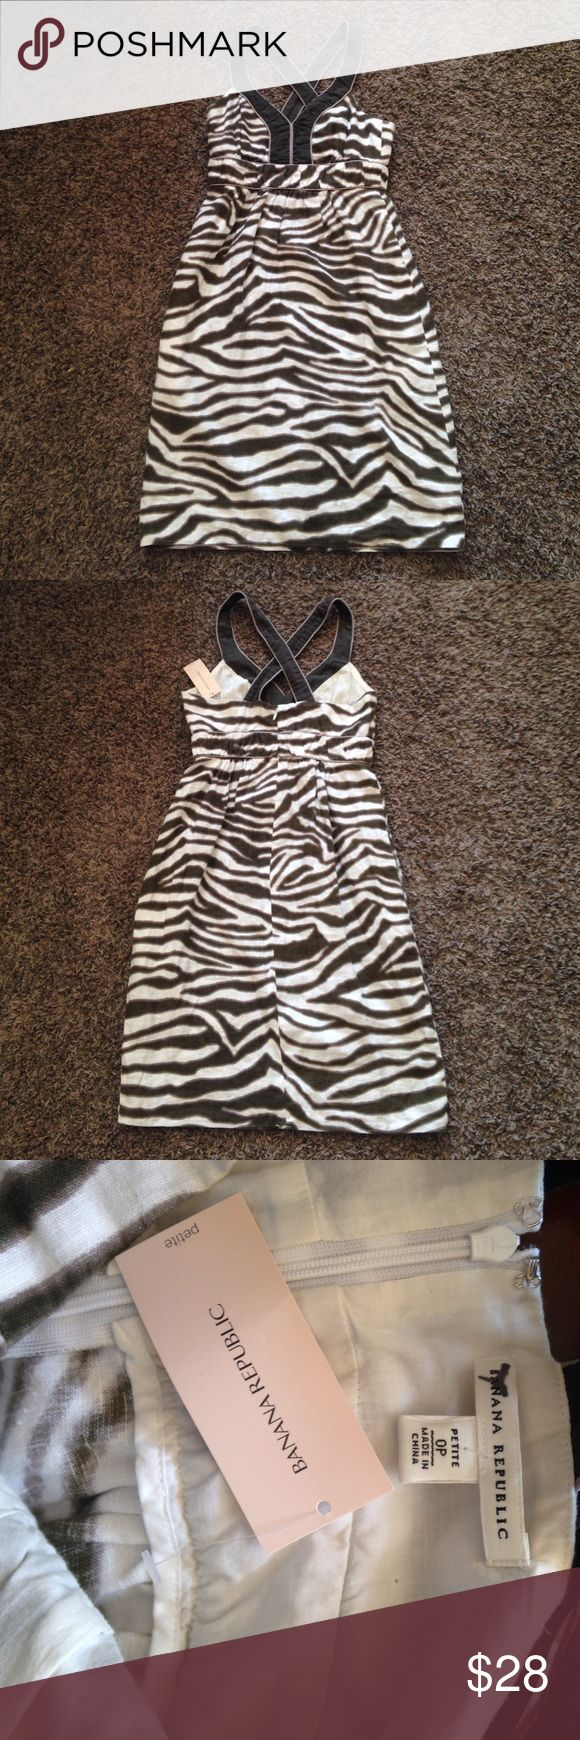 NWT Banana Republic Animal Print Dress. size 0P. This Banana Republic animal print dress is fabulous! It is brand new with tags and is a size 0 petite. Banana Republic Dresses